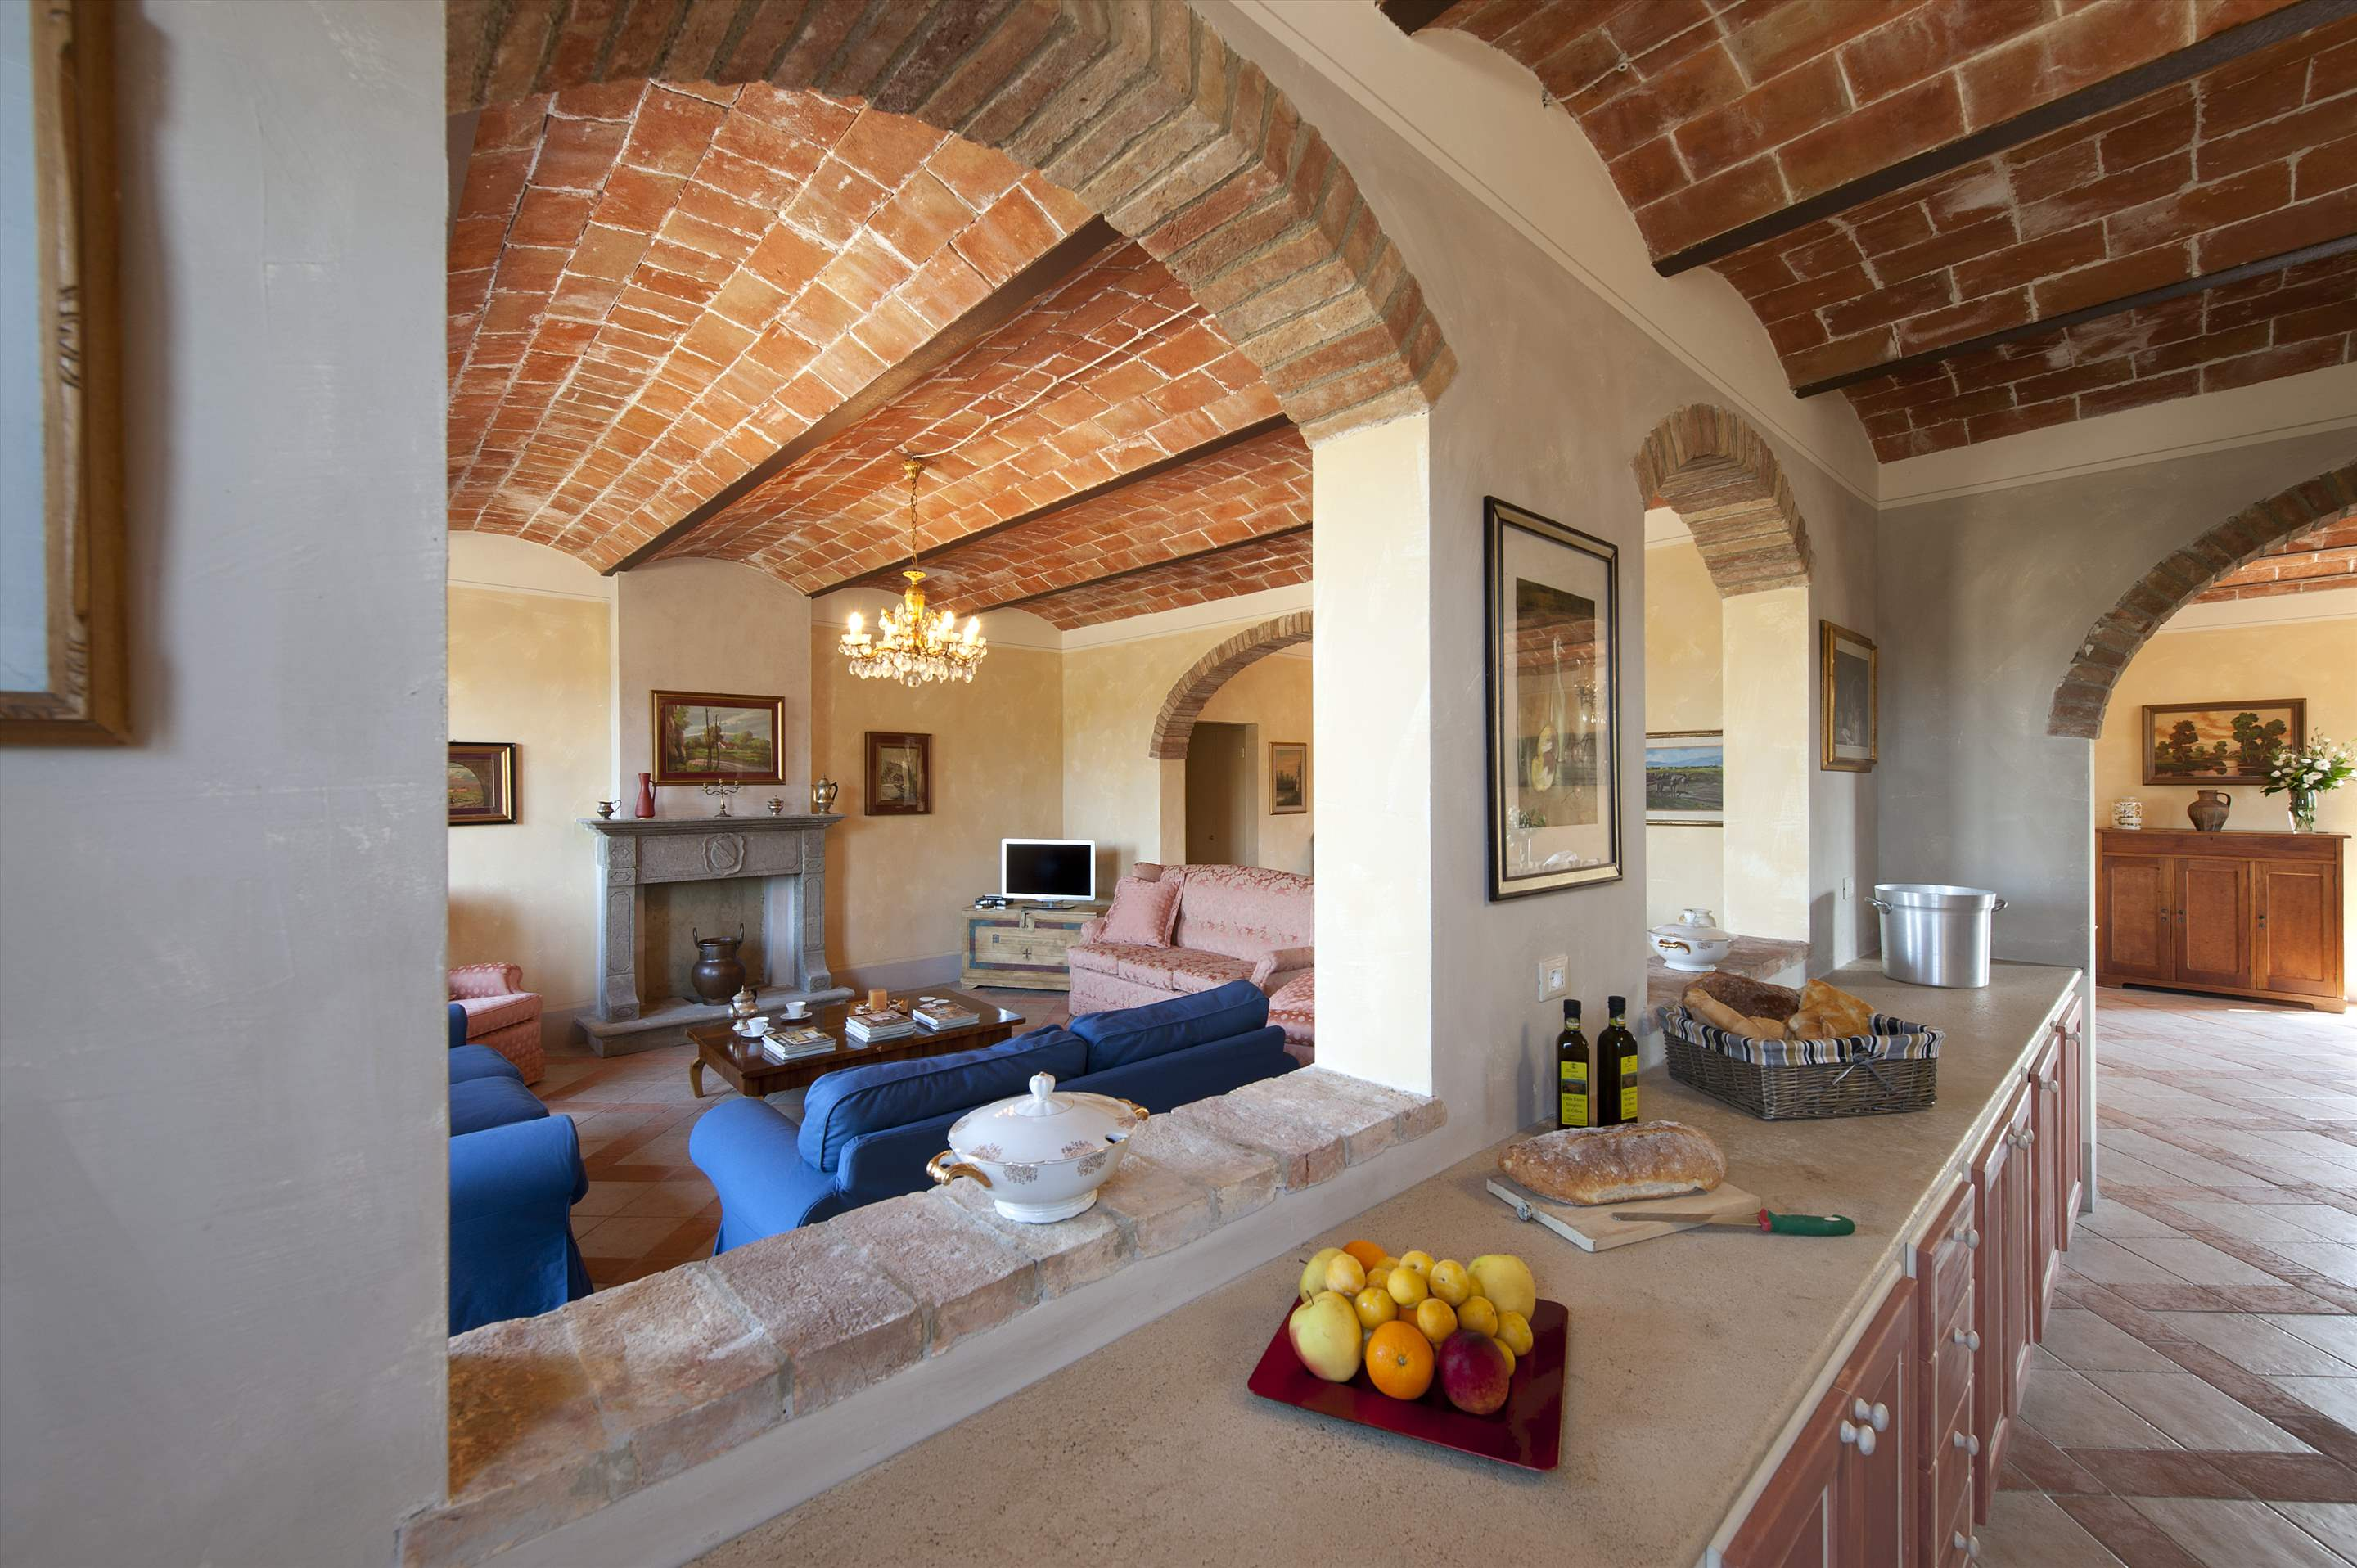 Podere Di Collina, Villa & Apts, 8 bedroom villa in Tuscany Coast, Tuscany Photo #7